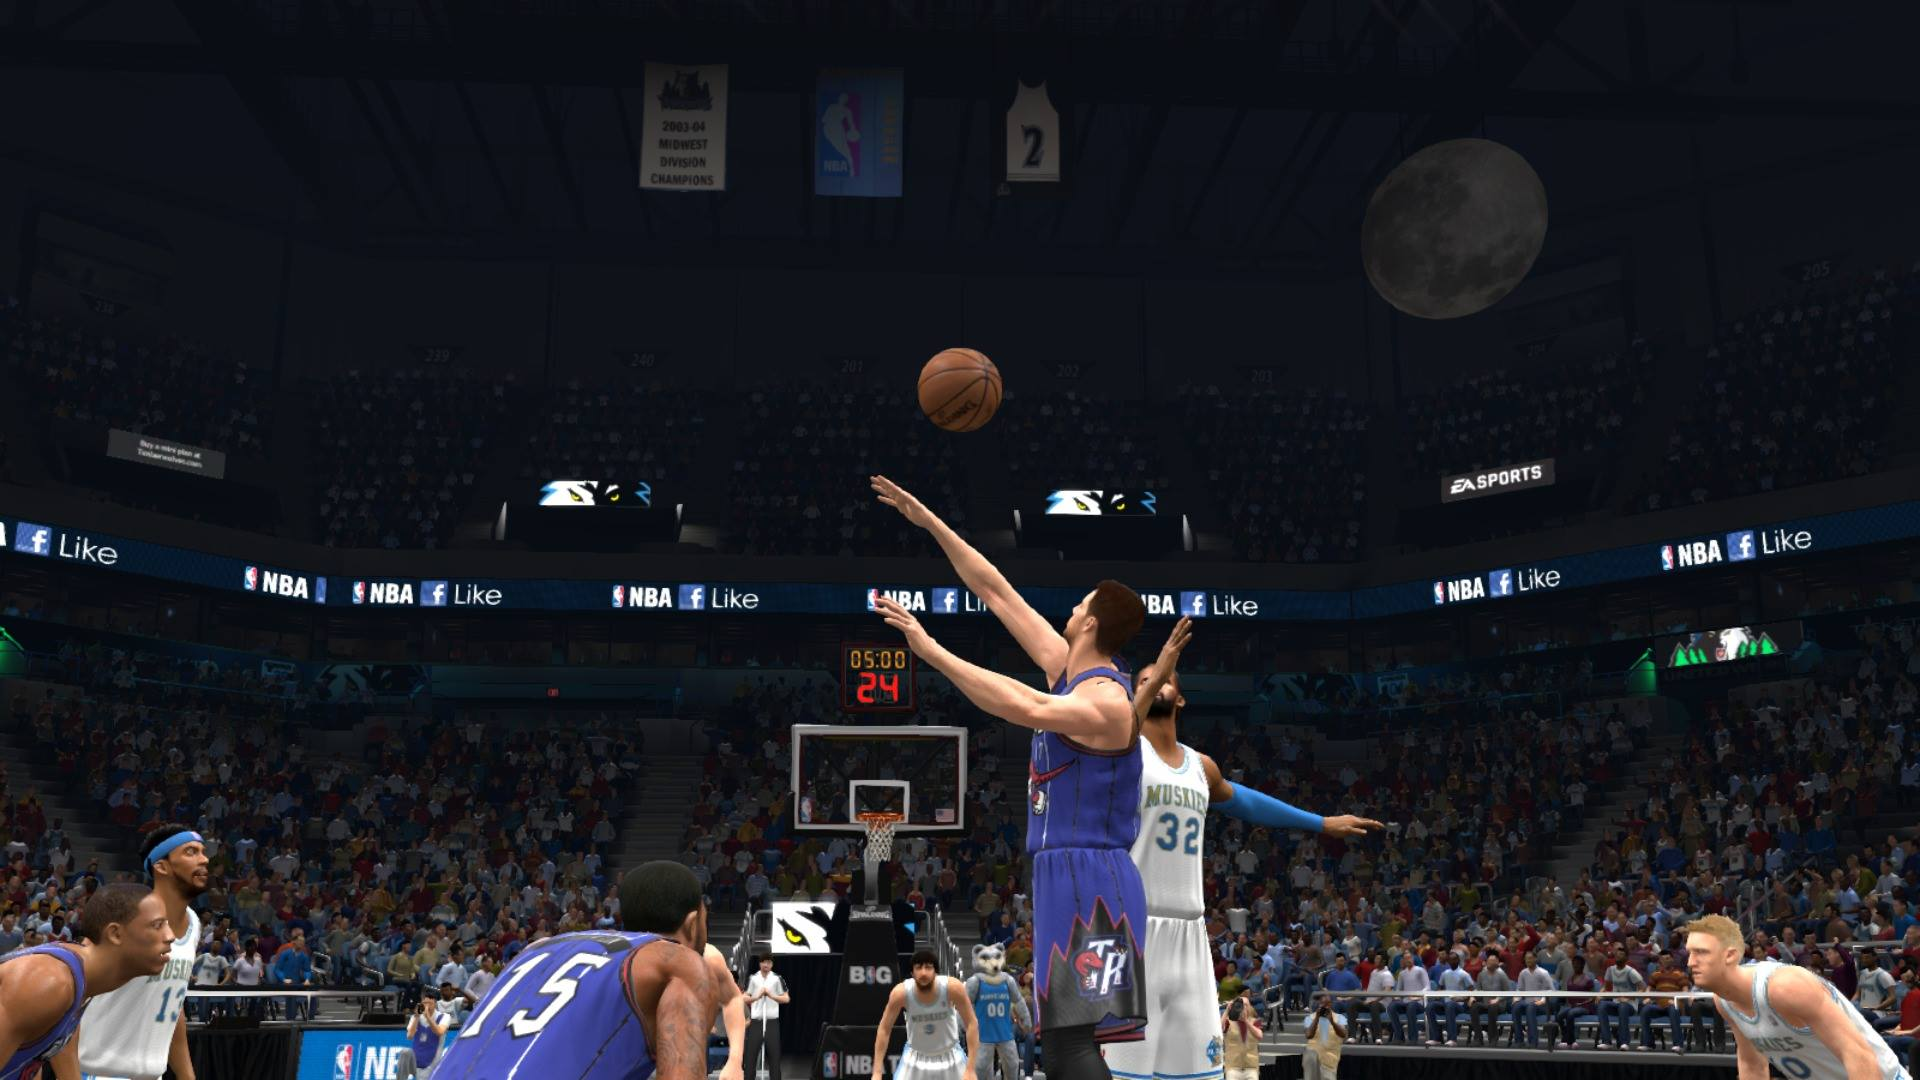 Moon in Target Center NBA Live 14 Tipoff